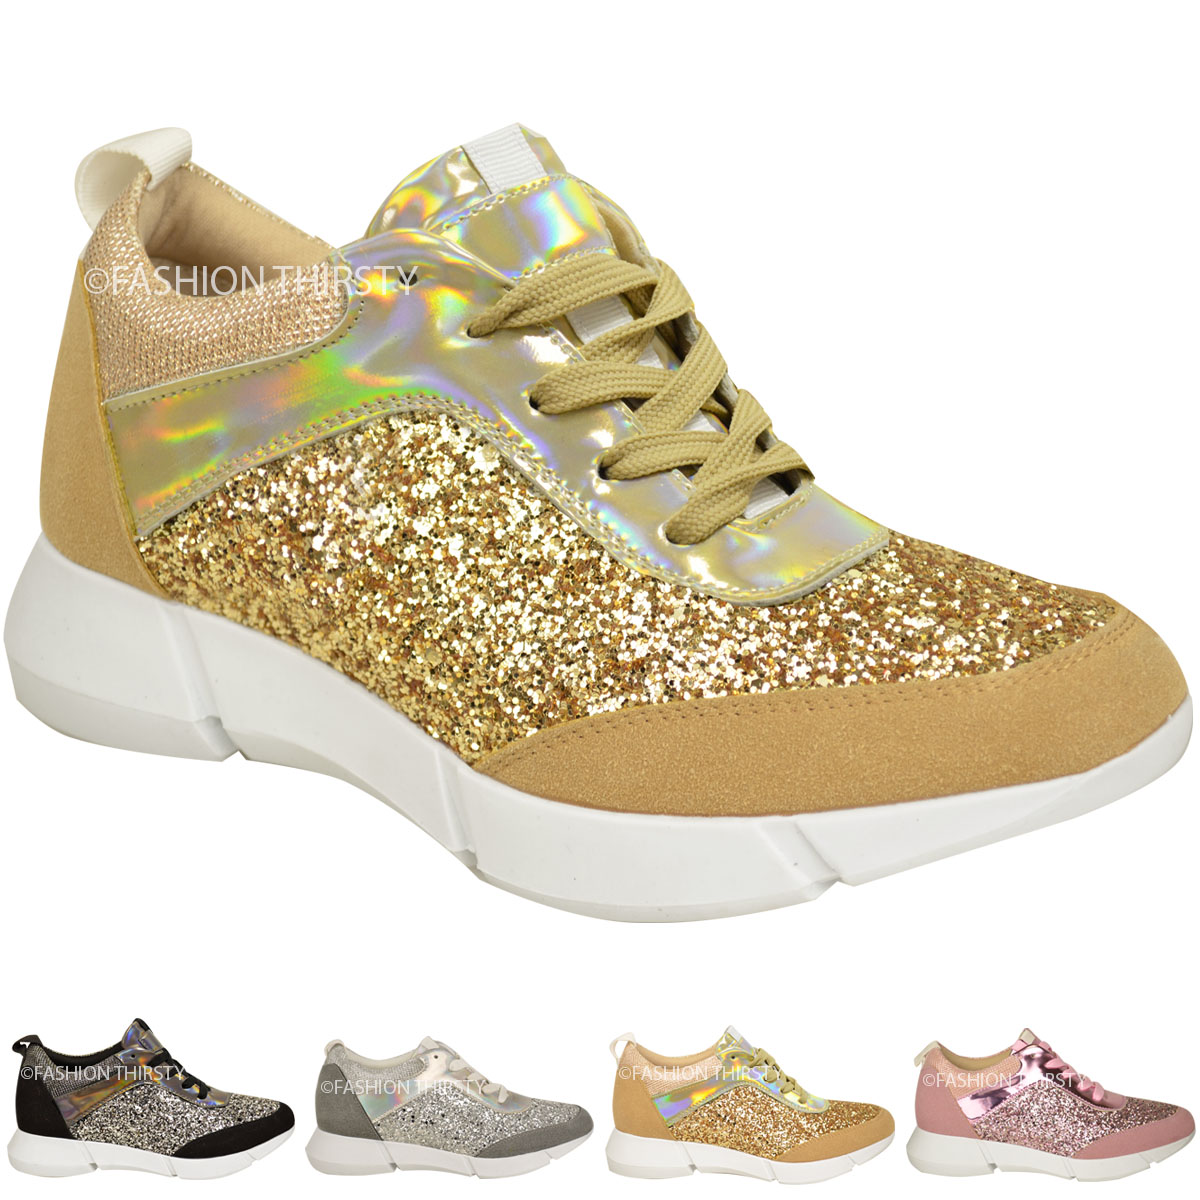 WOMENS LADIES GLITTER TRAINERS SNEAKERS FASHION CASUAL GYM SPORT FITNESS SIZE